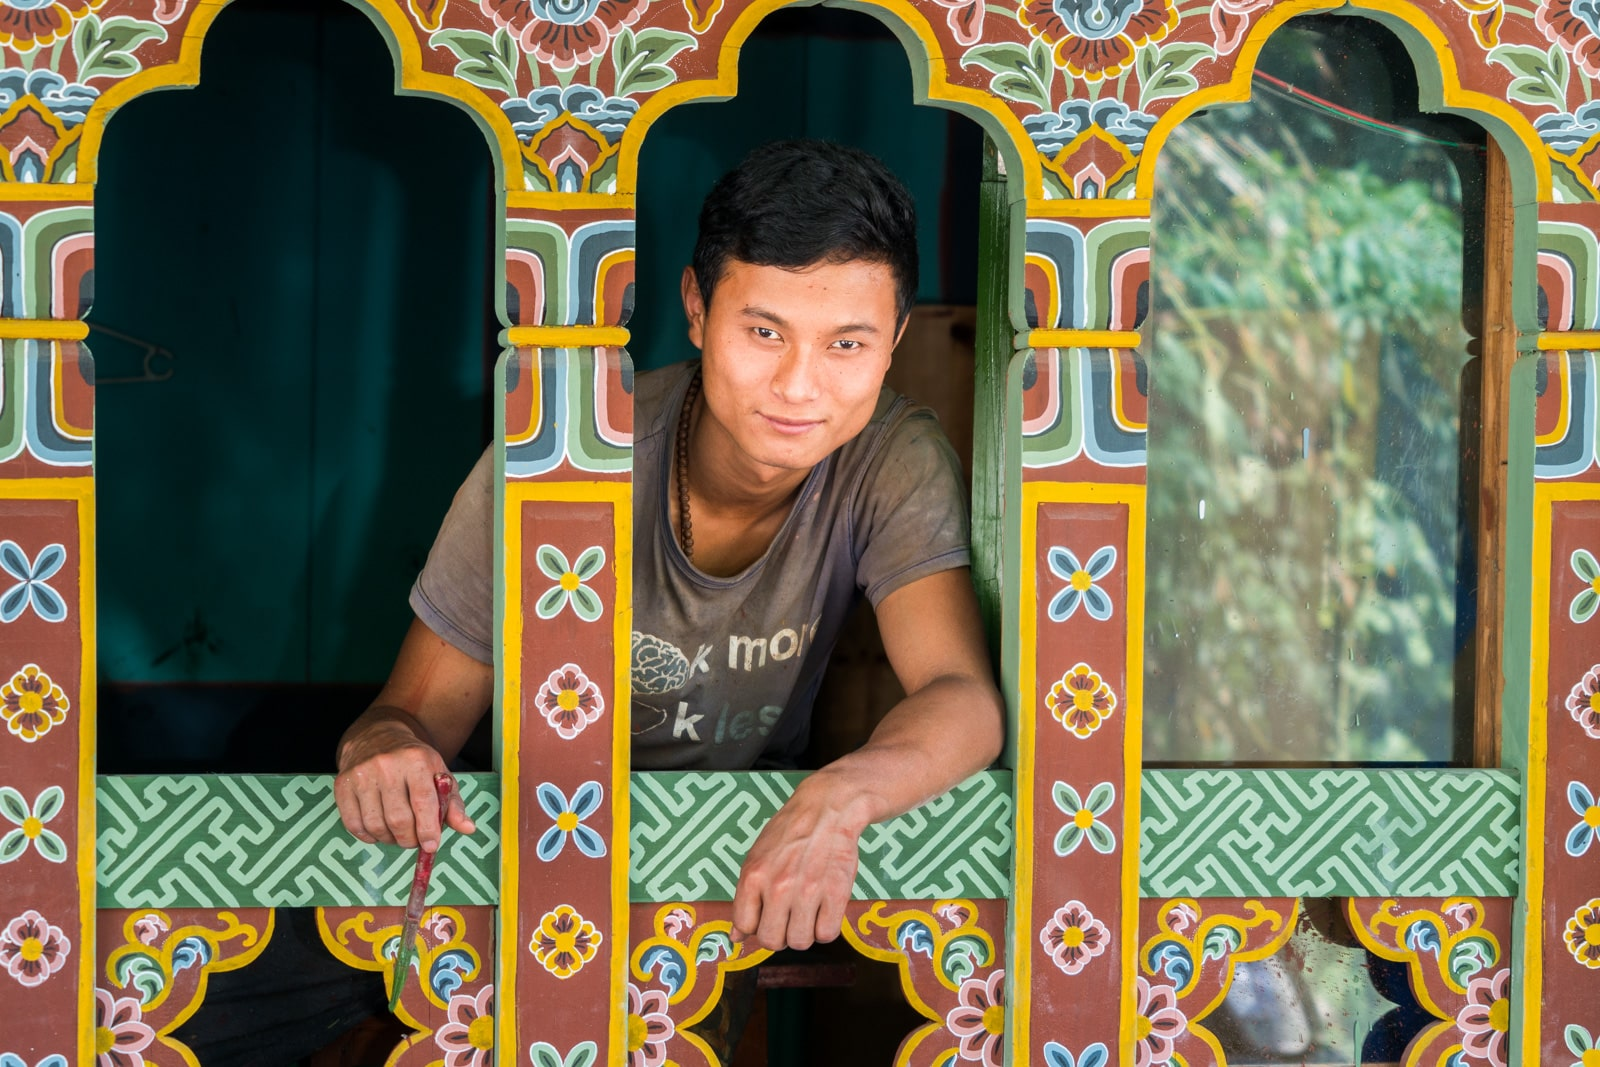 Stunning photos of Bhutan - Boy standing in a traditionally painted Bhutanese window - Lost With Purpose travel blog